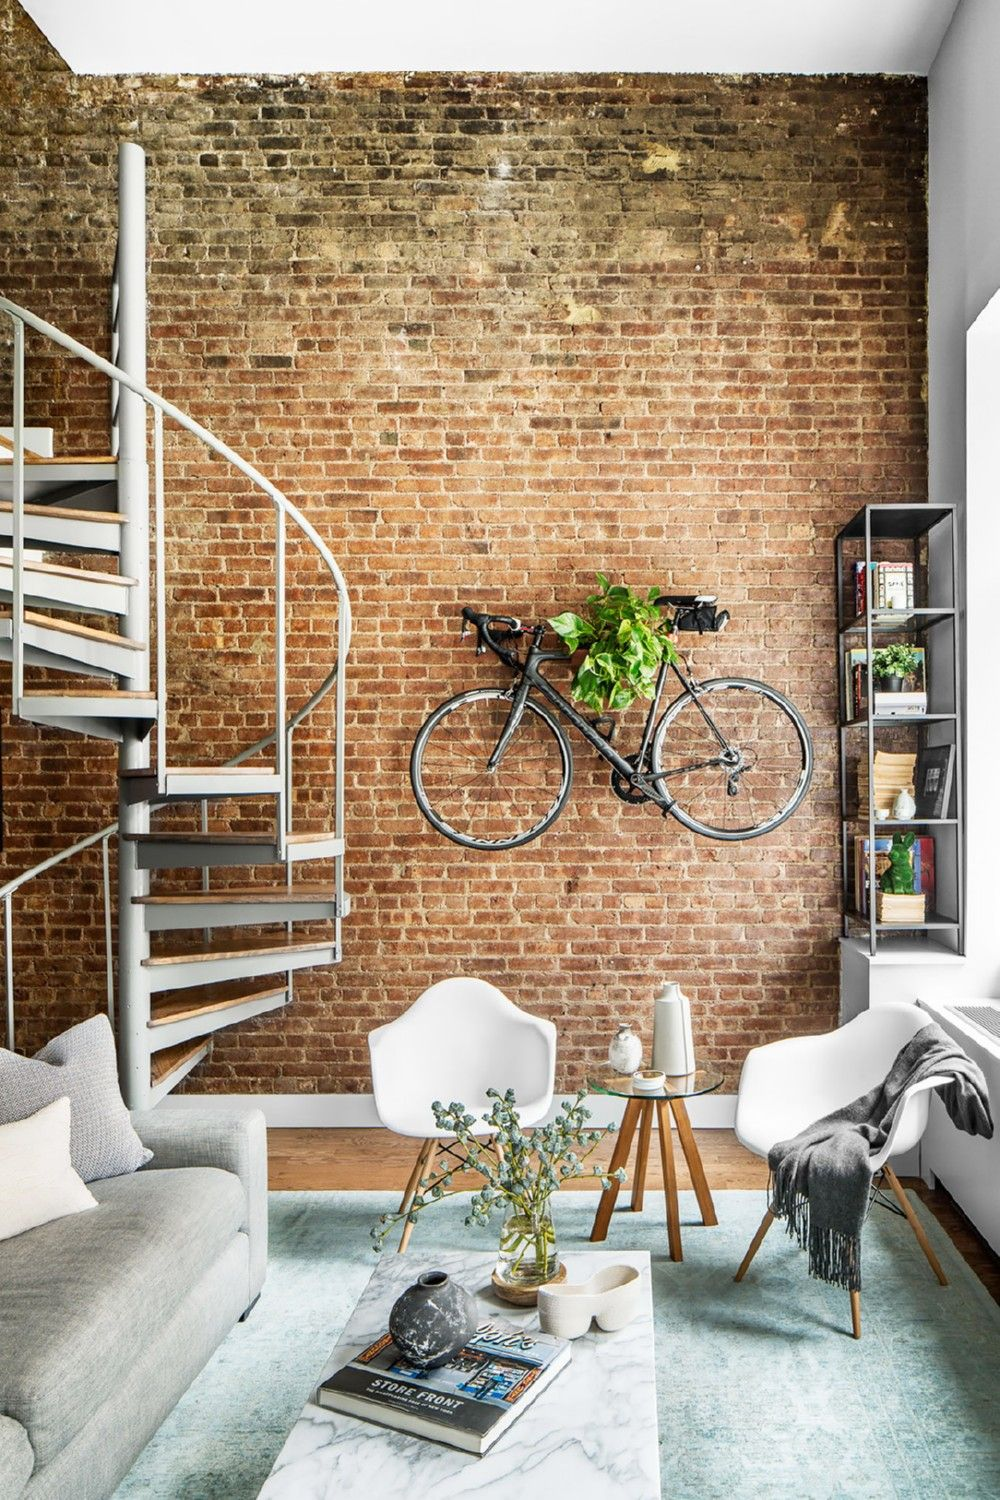 Awesome 30 Home Interior Designs With Exposed Brick Walls Ideas  Https://homedecort.